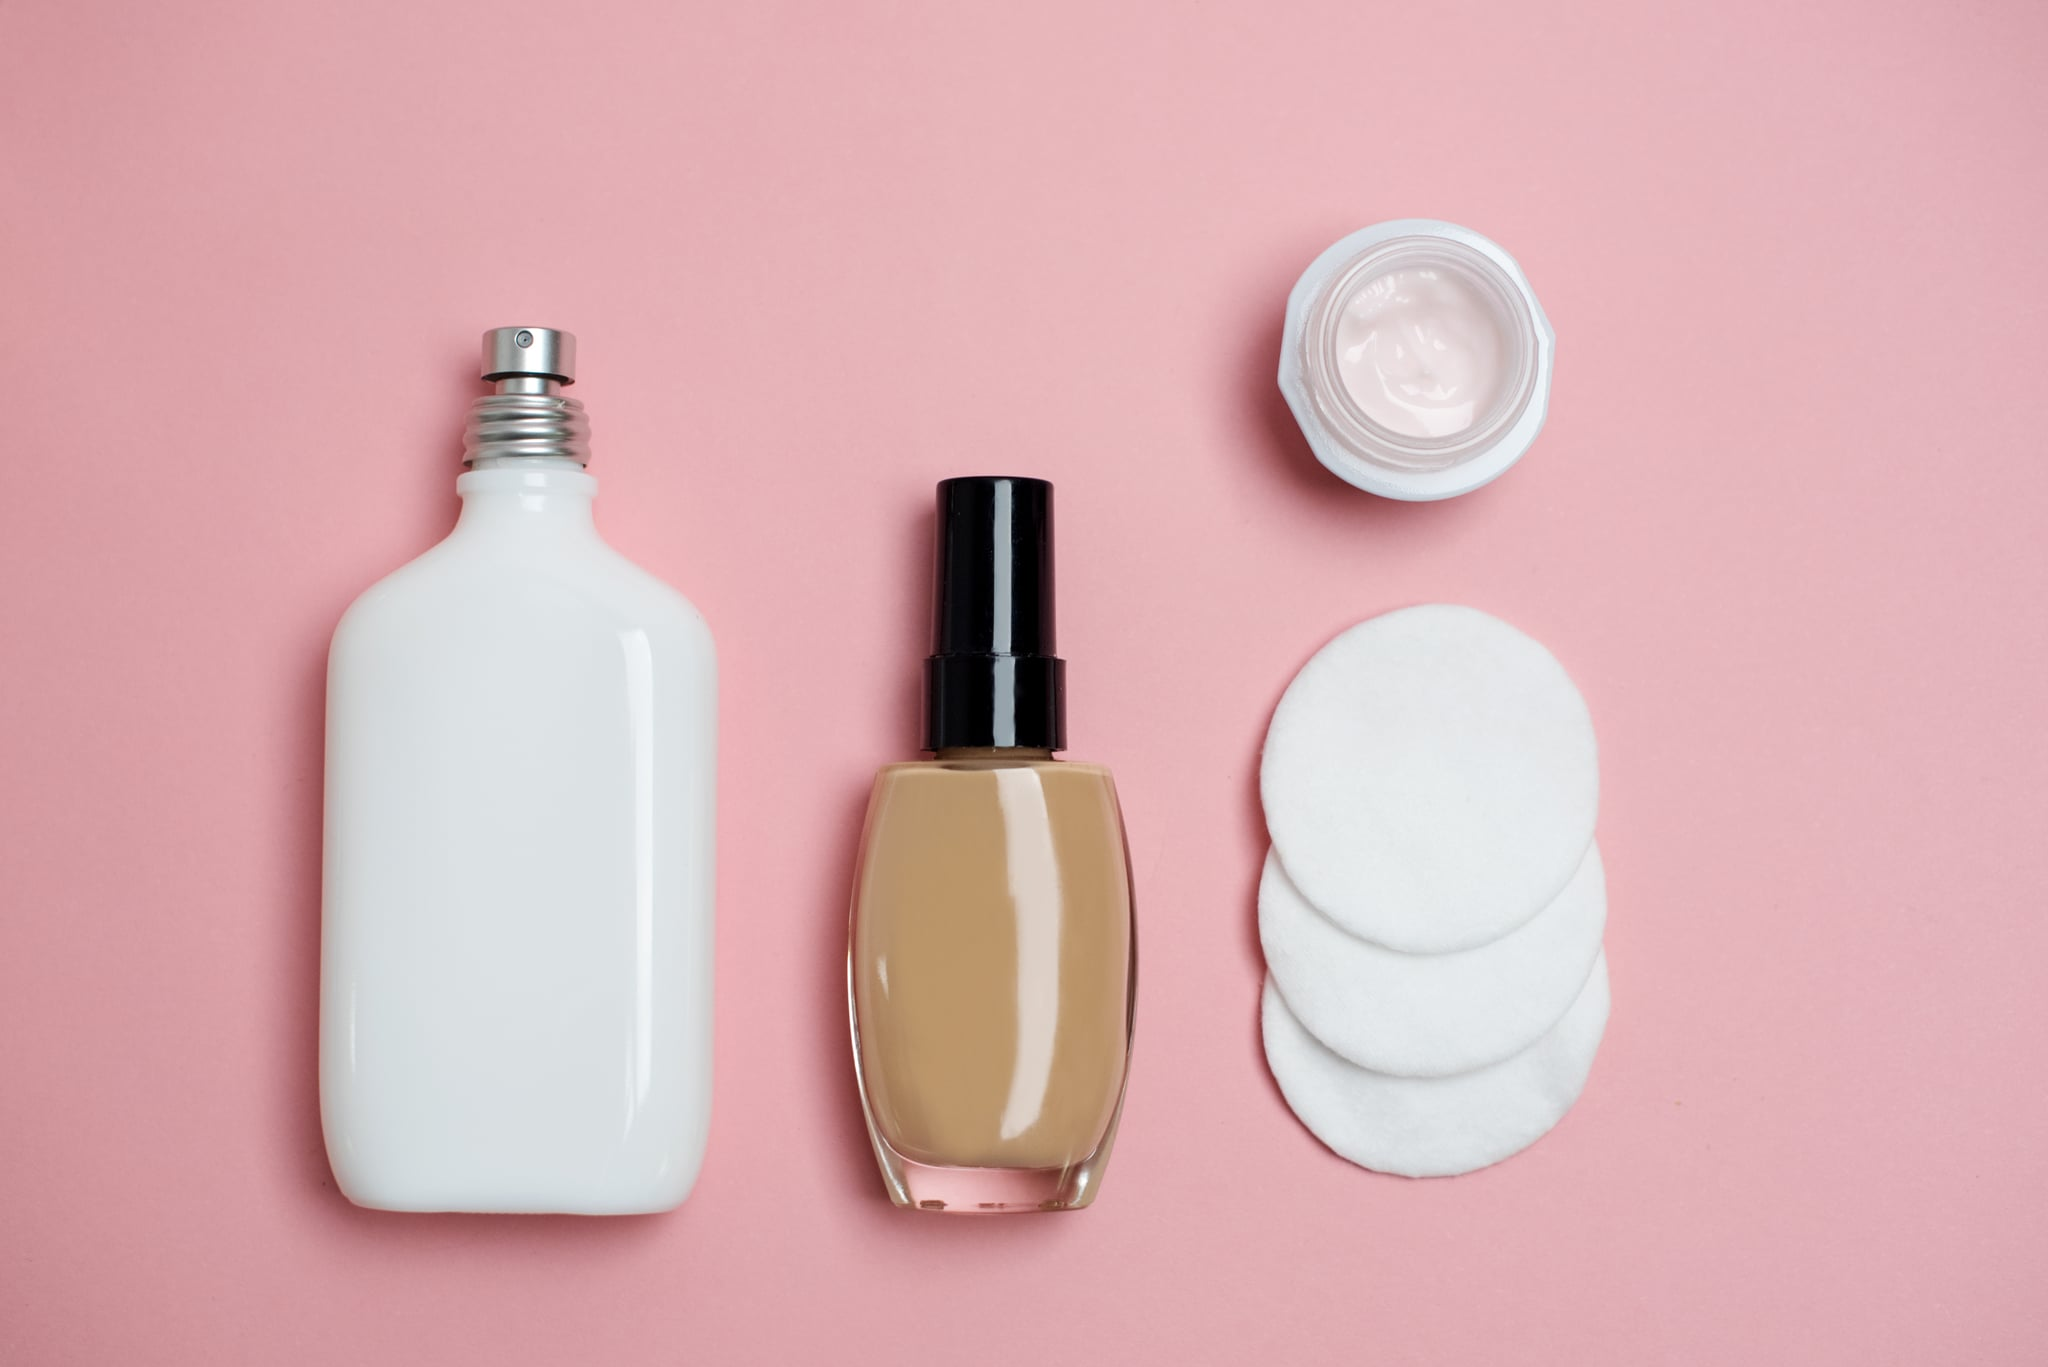 Variety of beauty products on pink background